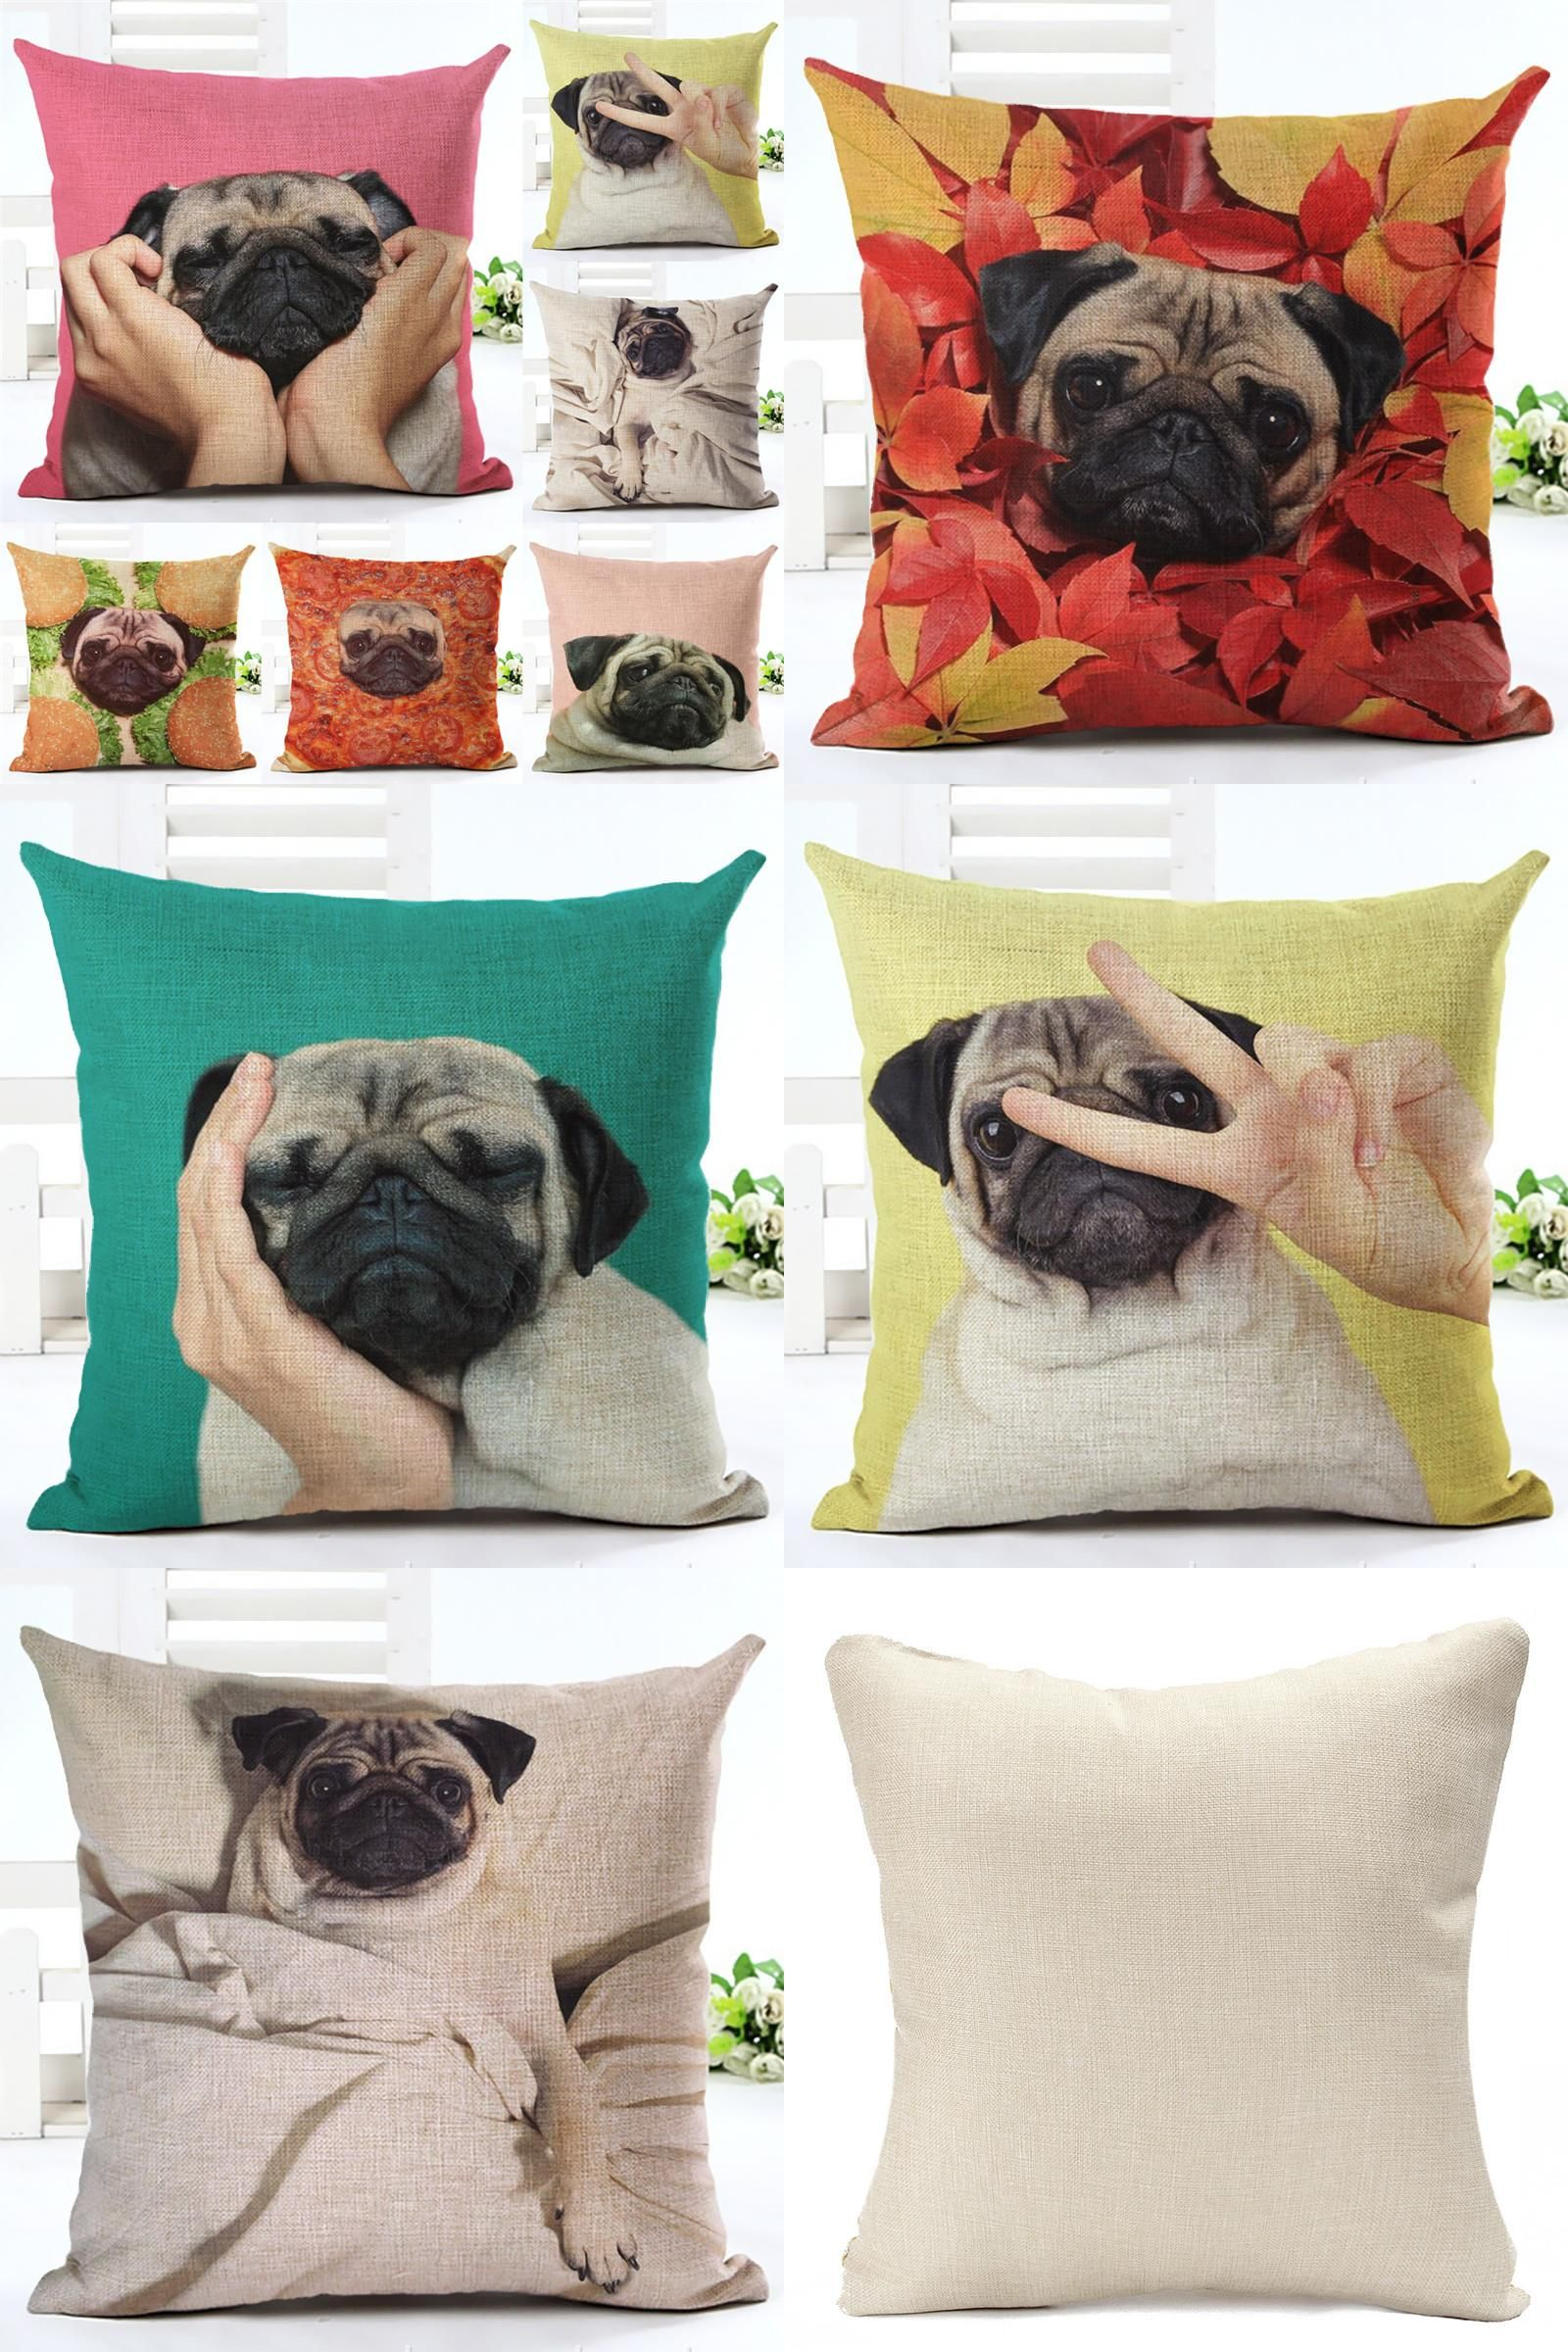 Visit to Buy] Fashion Animal Cushion Cover Funny Dog Pattern